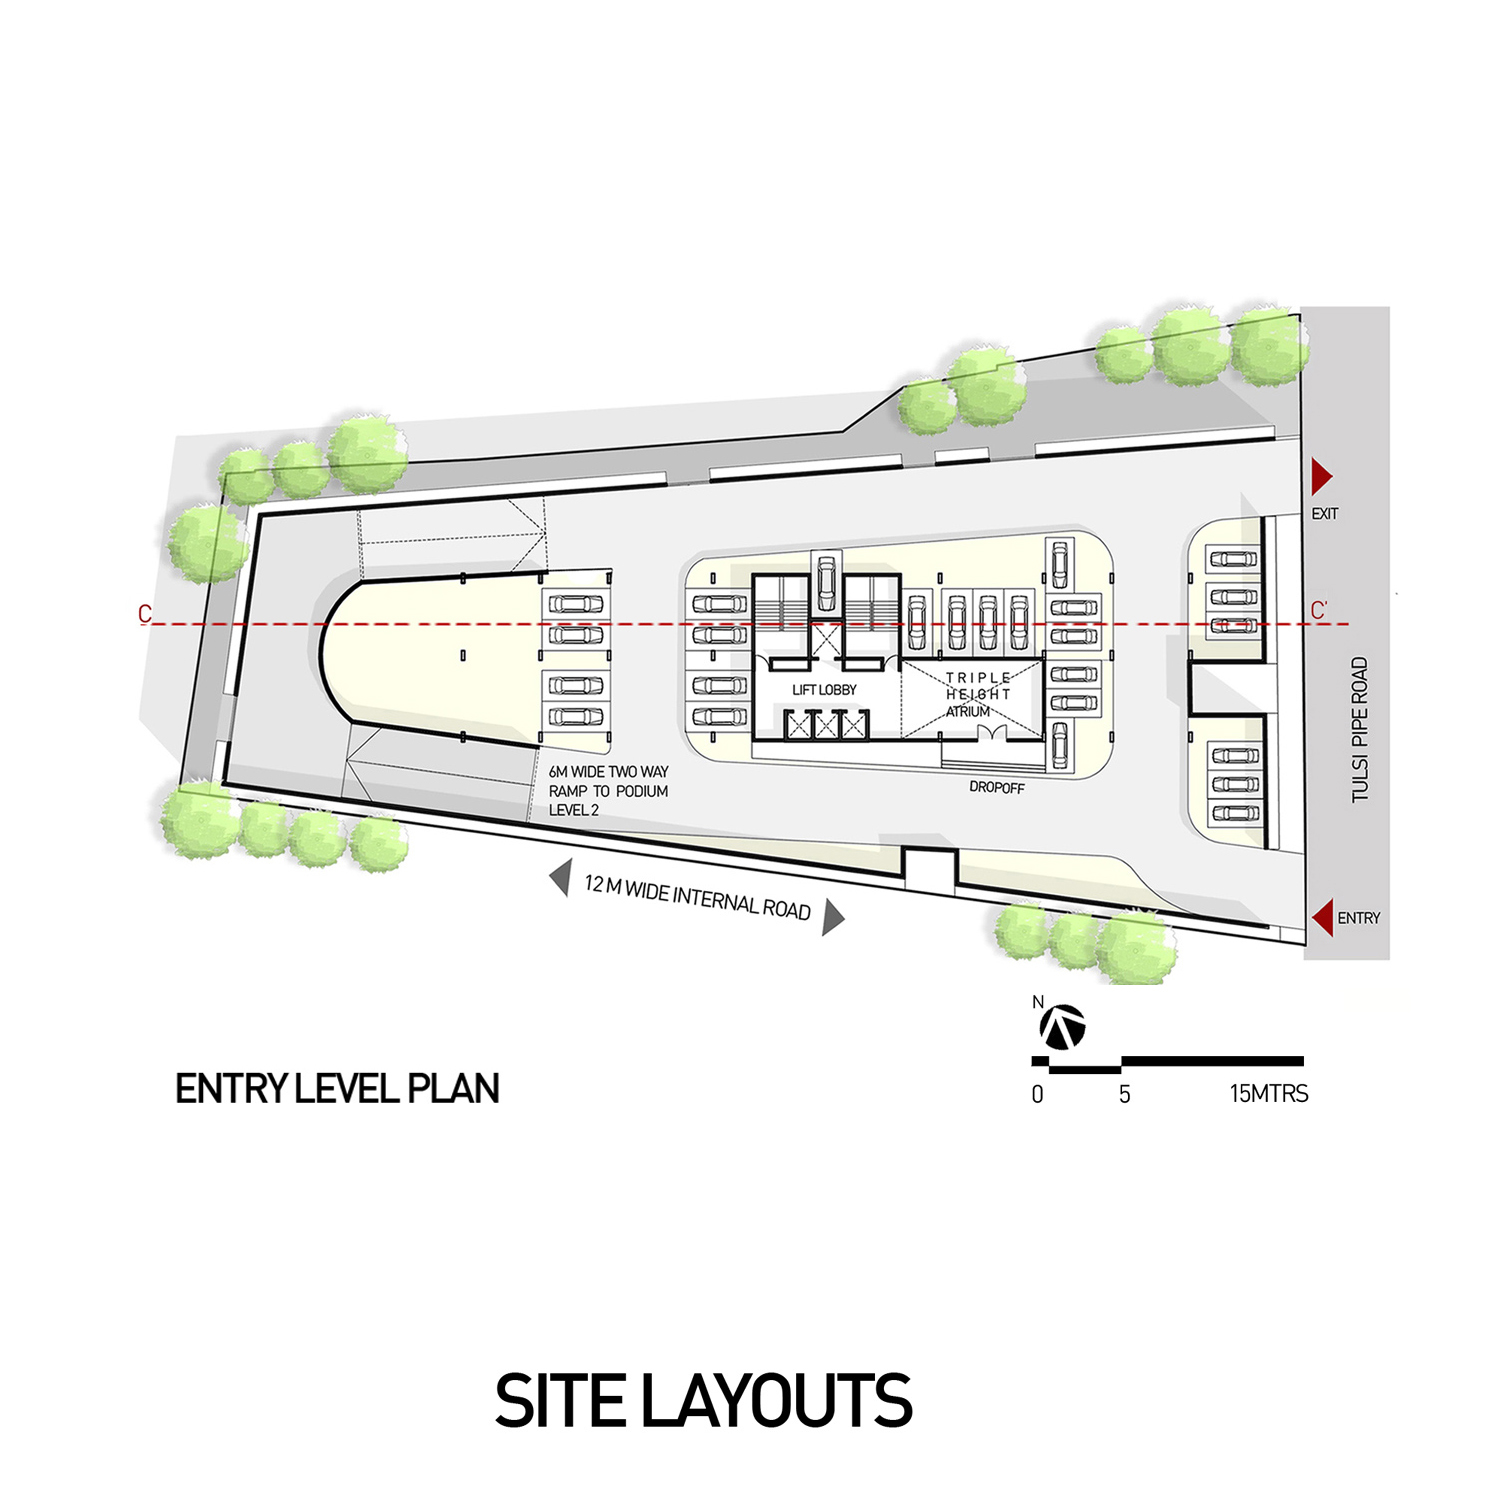 ENTRY LEVEL PLAN sanjay puri architects}